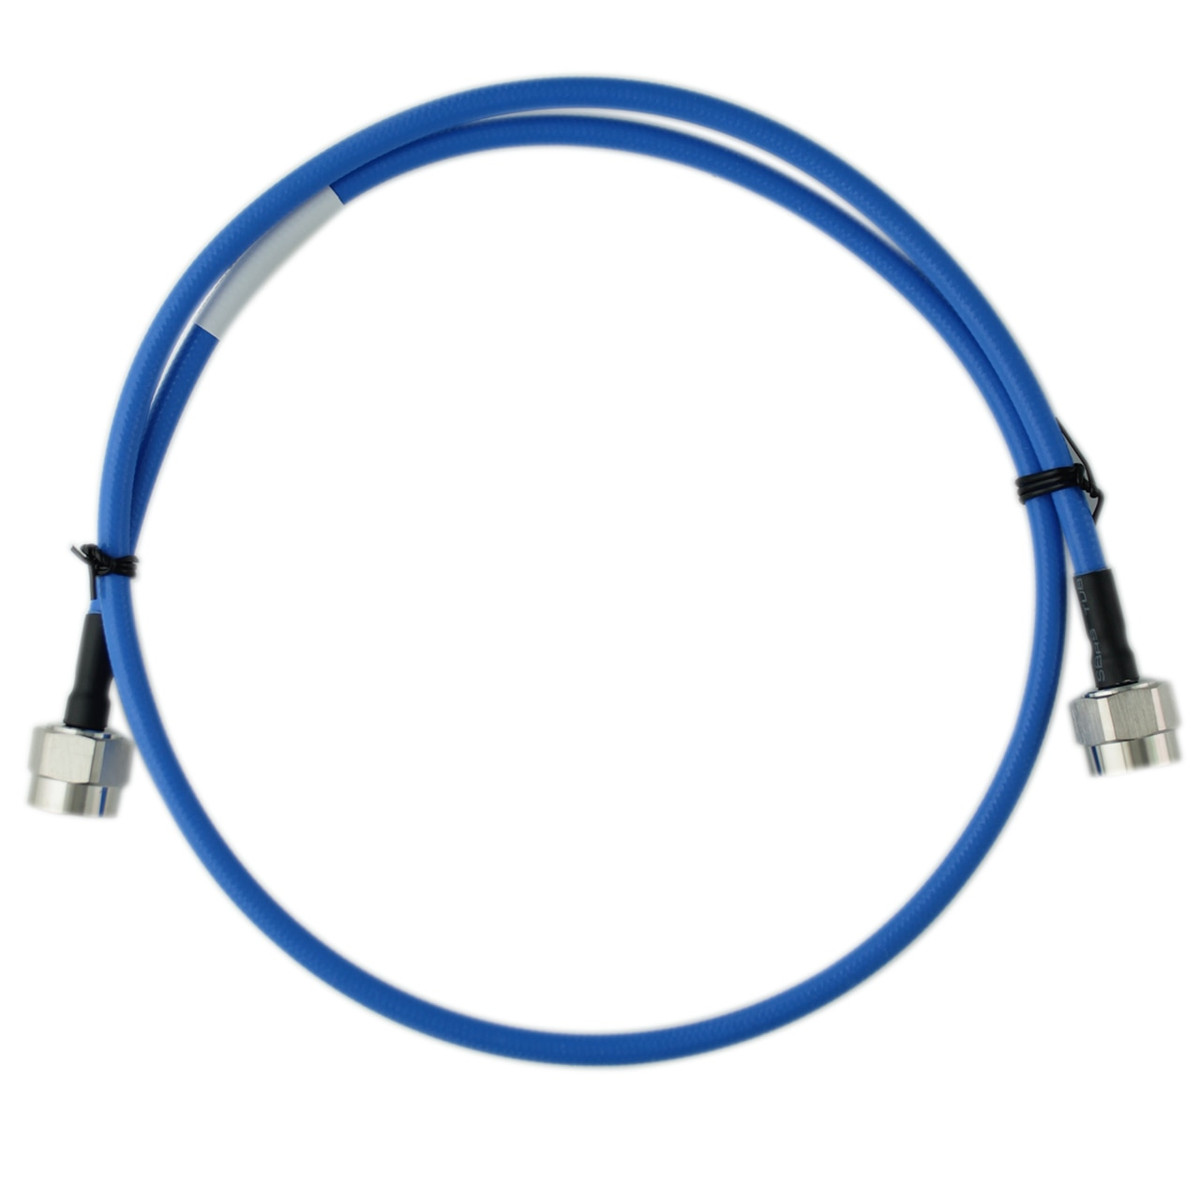 Bolton Technical N-Male to N-Male SPO-250 Low Pim Ultra Low-Loss Jumper Cable | 1 m Cable